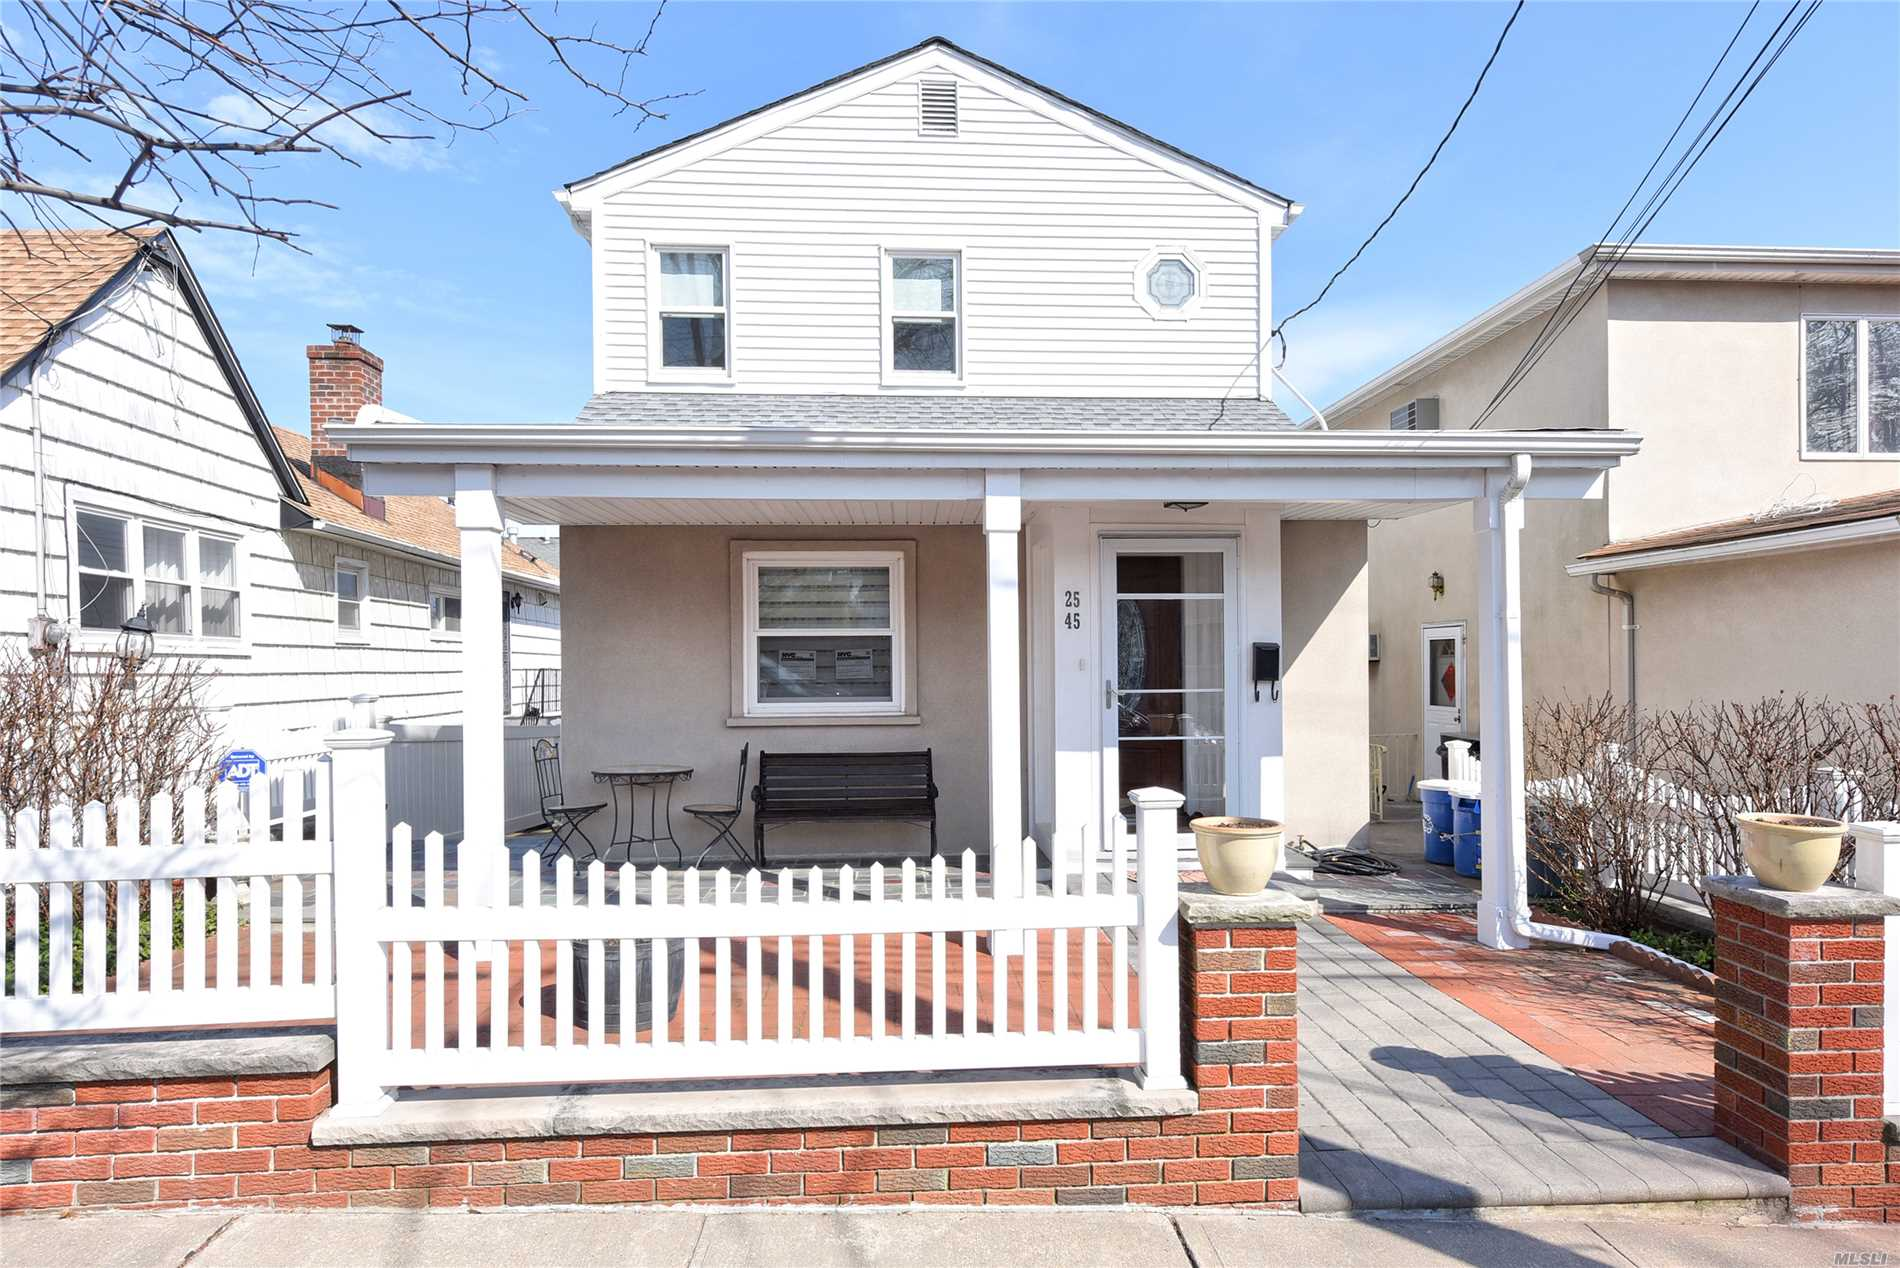 Spring Brings This Wondrous Colonial Home Full Of Charm With An Impressive Layout. 3 Bedrooms With 2 Full Baths, Living, Dining, Eat In Kitchen (Gas Cooking), Sunny Den, Huge Finished Basement With OSE And Other Extras.